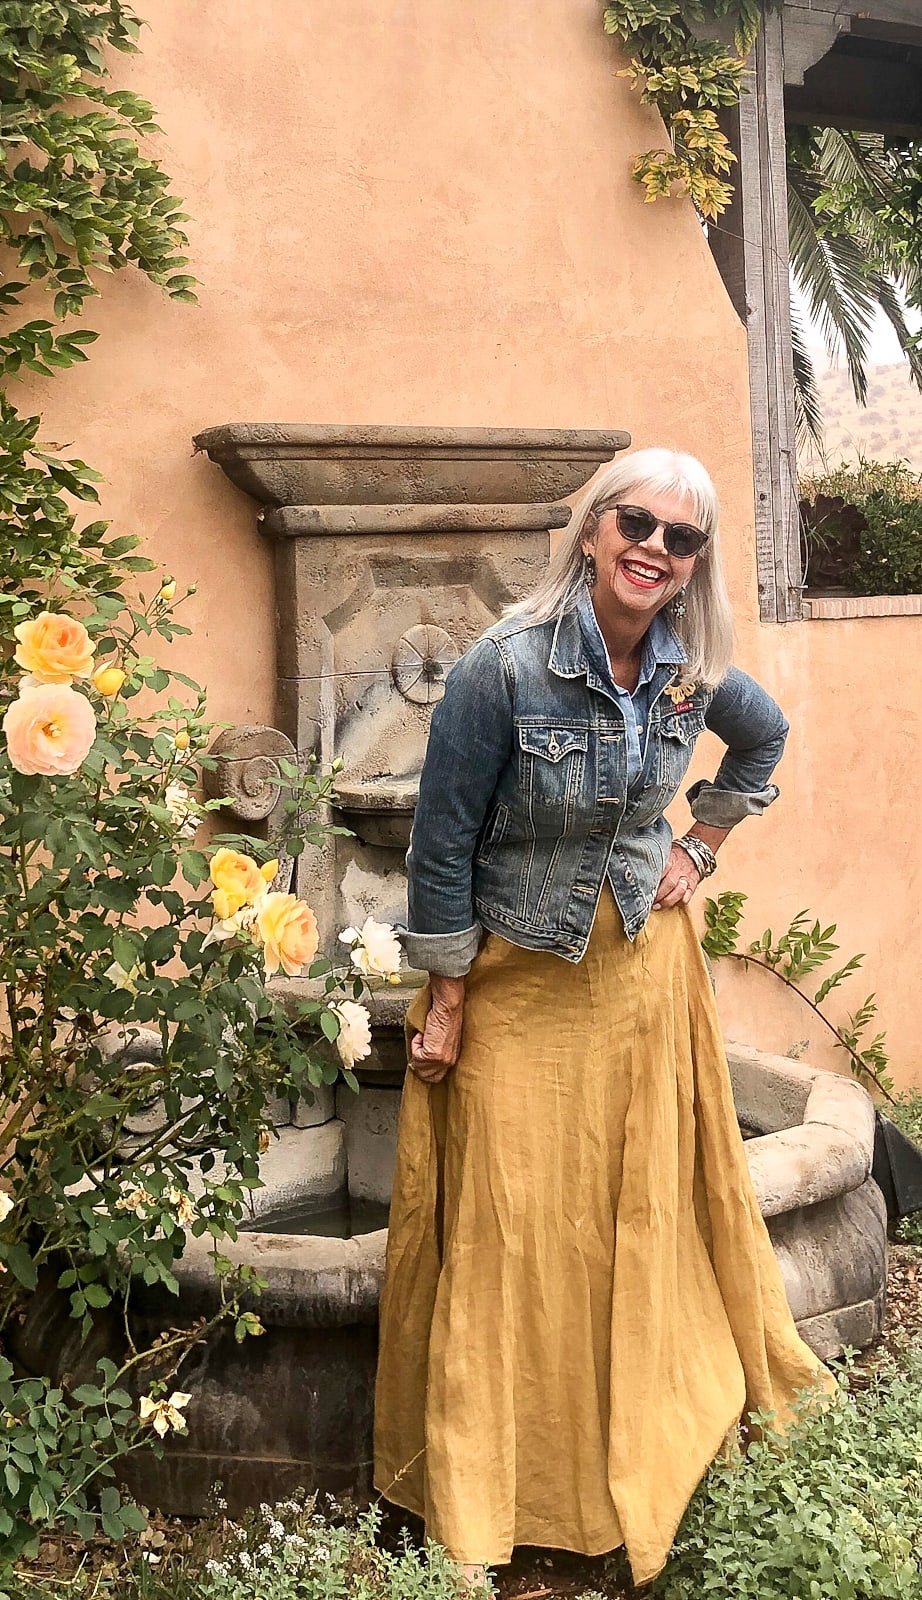 over 50 fashion blogger cindy hattersley in Cp Shades Lily Skirt and J Crew Chambray